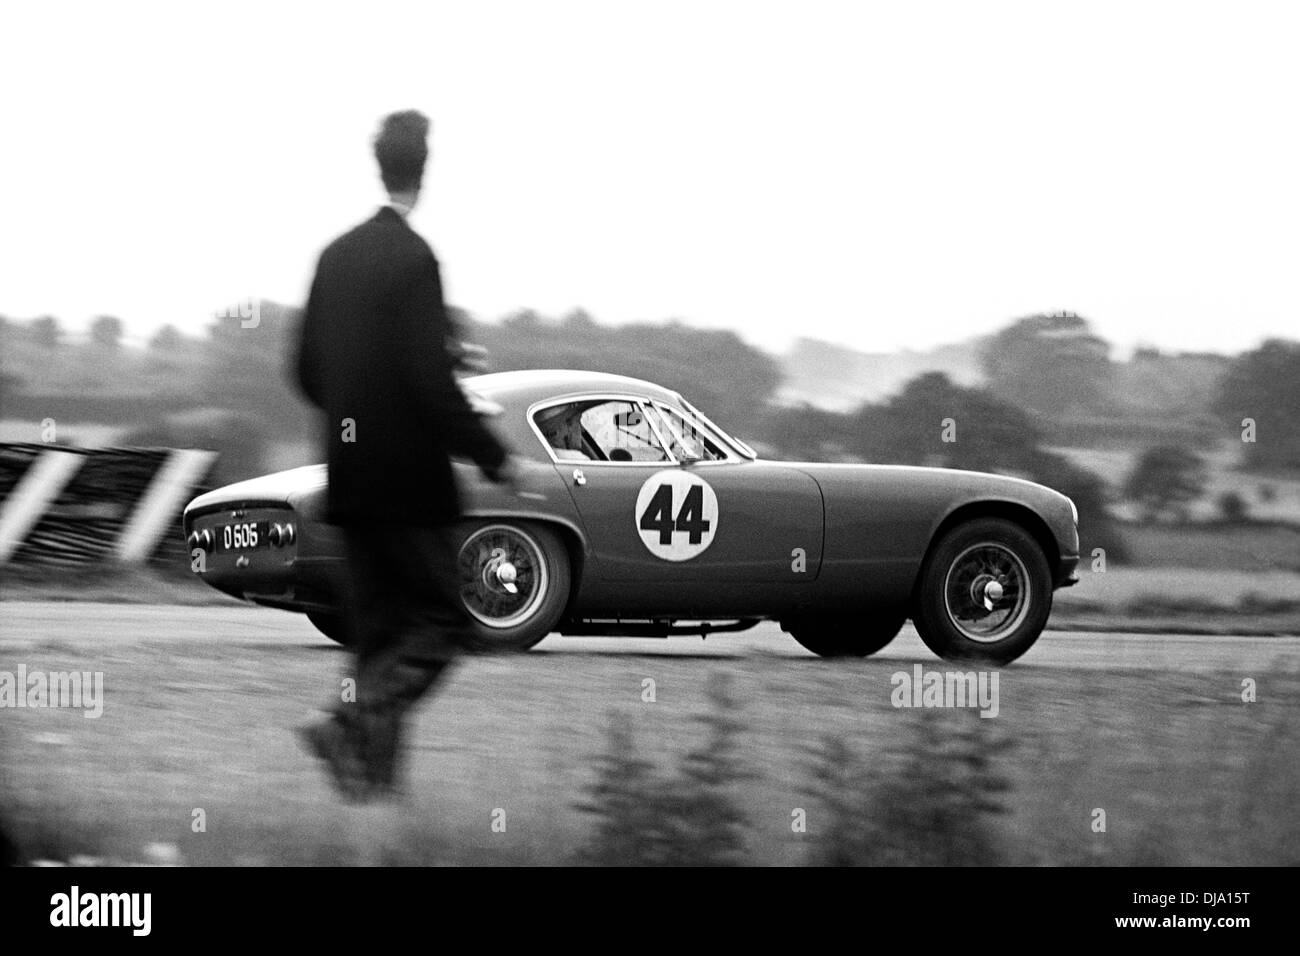 No44 Chris Summers driving a Lotus Elite in the Tourist Trophy, Goodwood, England 20 August 1960. - Stock Image